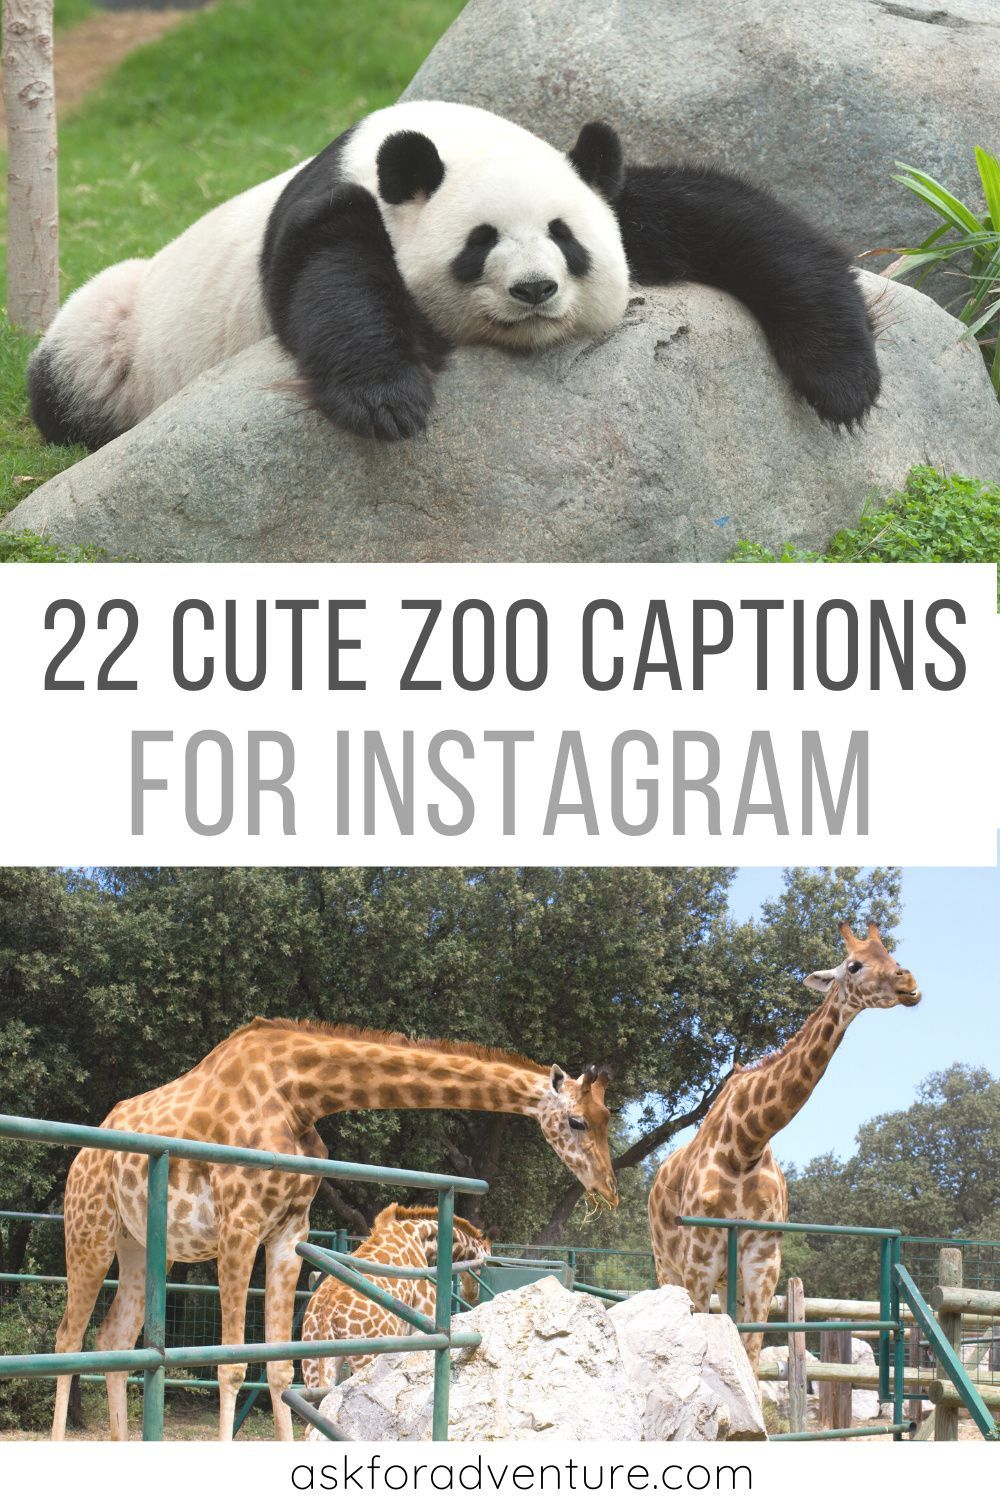 22 Cute Zoo Captions For Instagram Pictures Of Animals Ask For Adventure Instagram Captions Good Instagram Captions Instagram Captions For Pictures